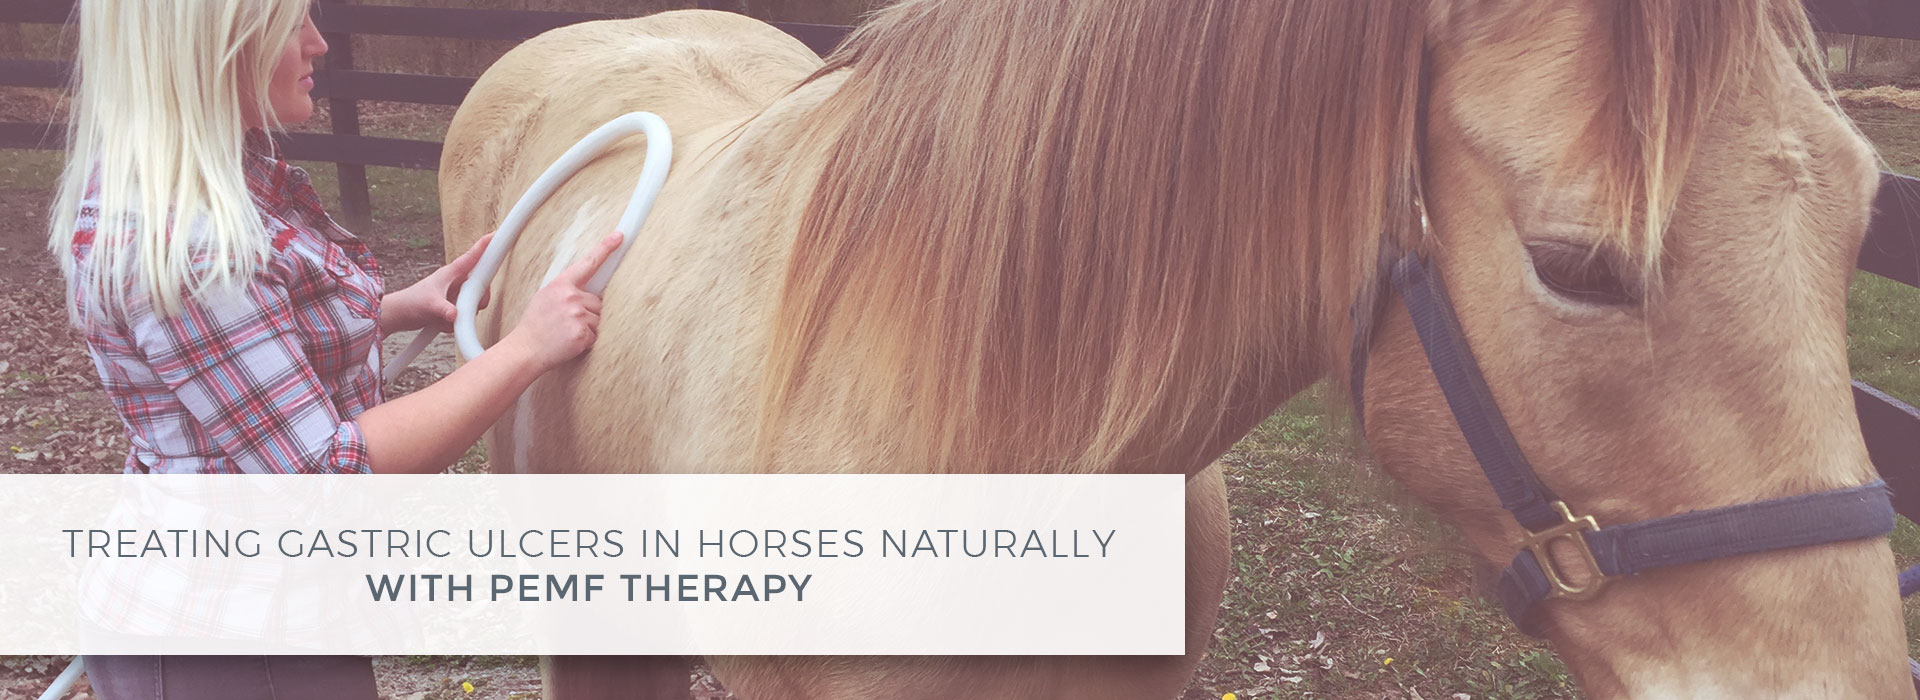 Treating Gastric Ulcers in Horses Naturally with PEMF Therapy